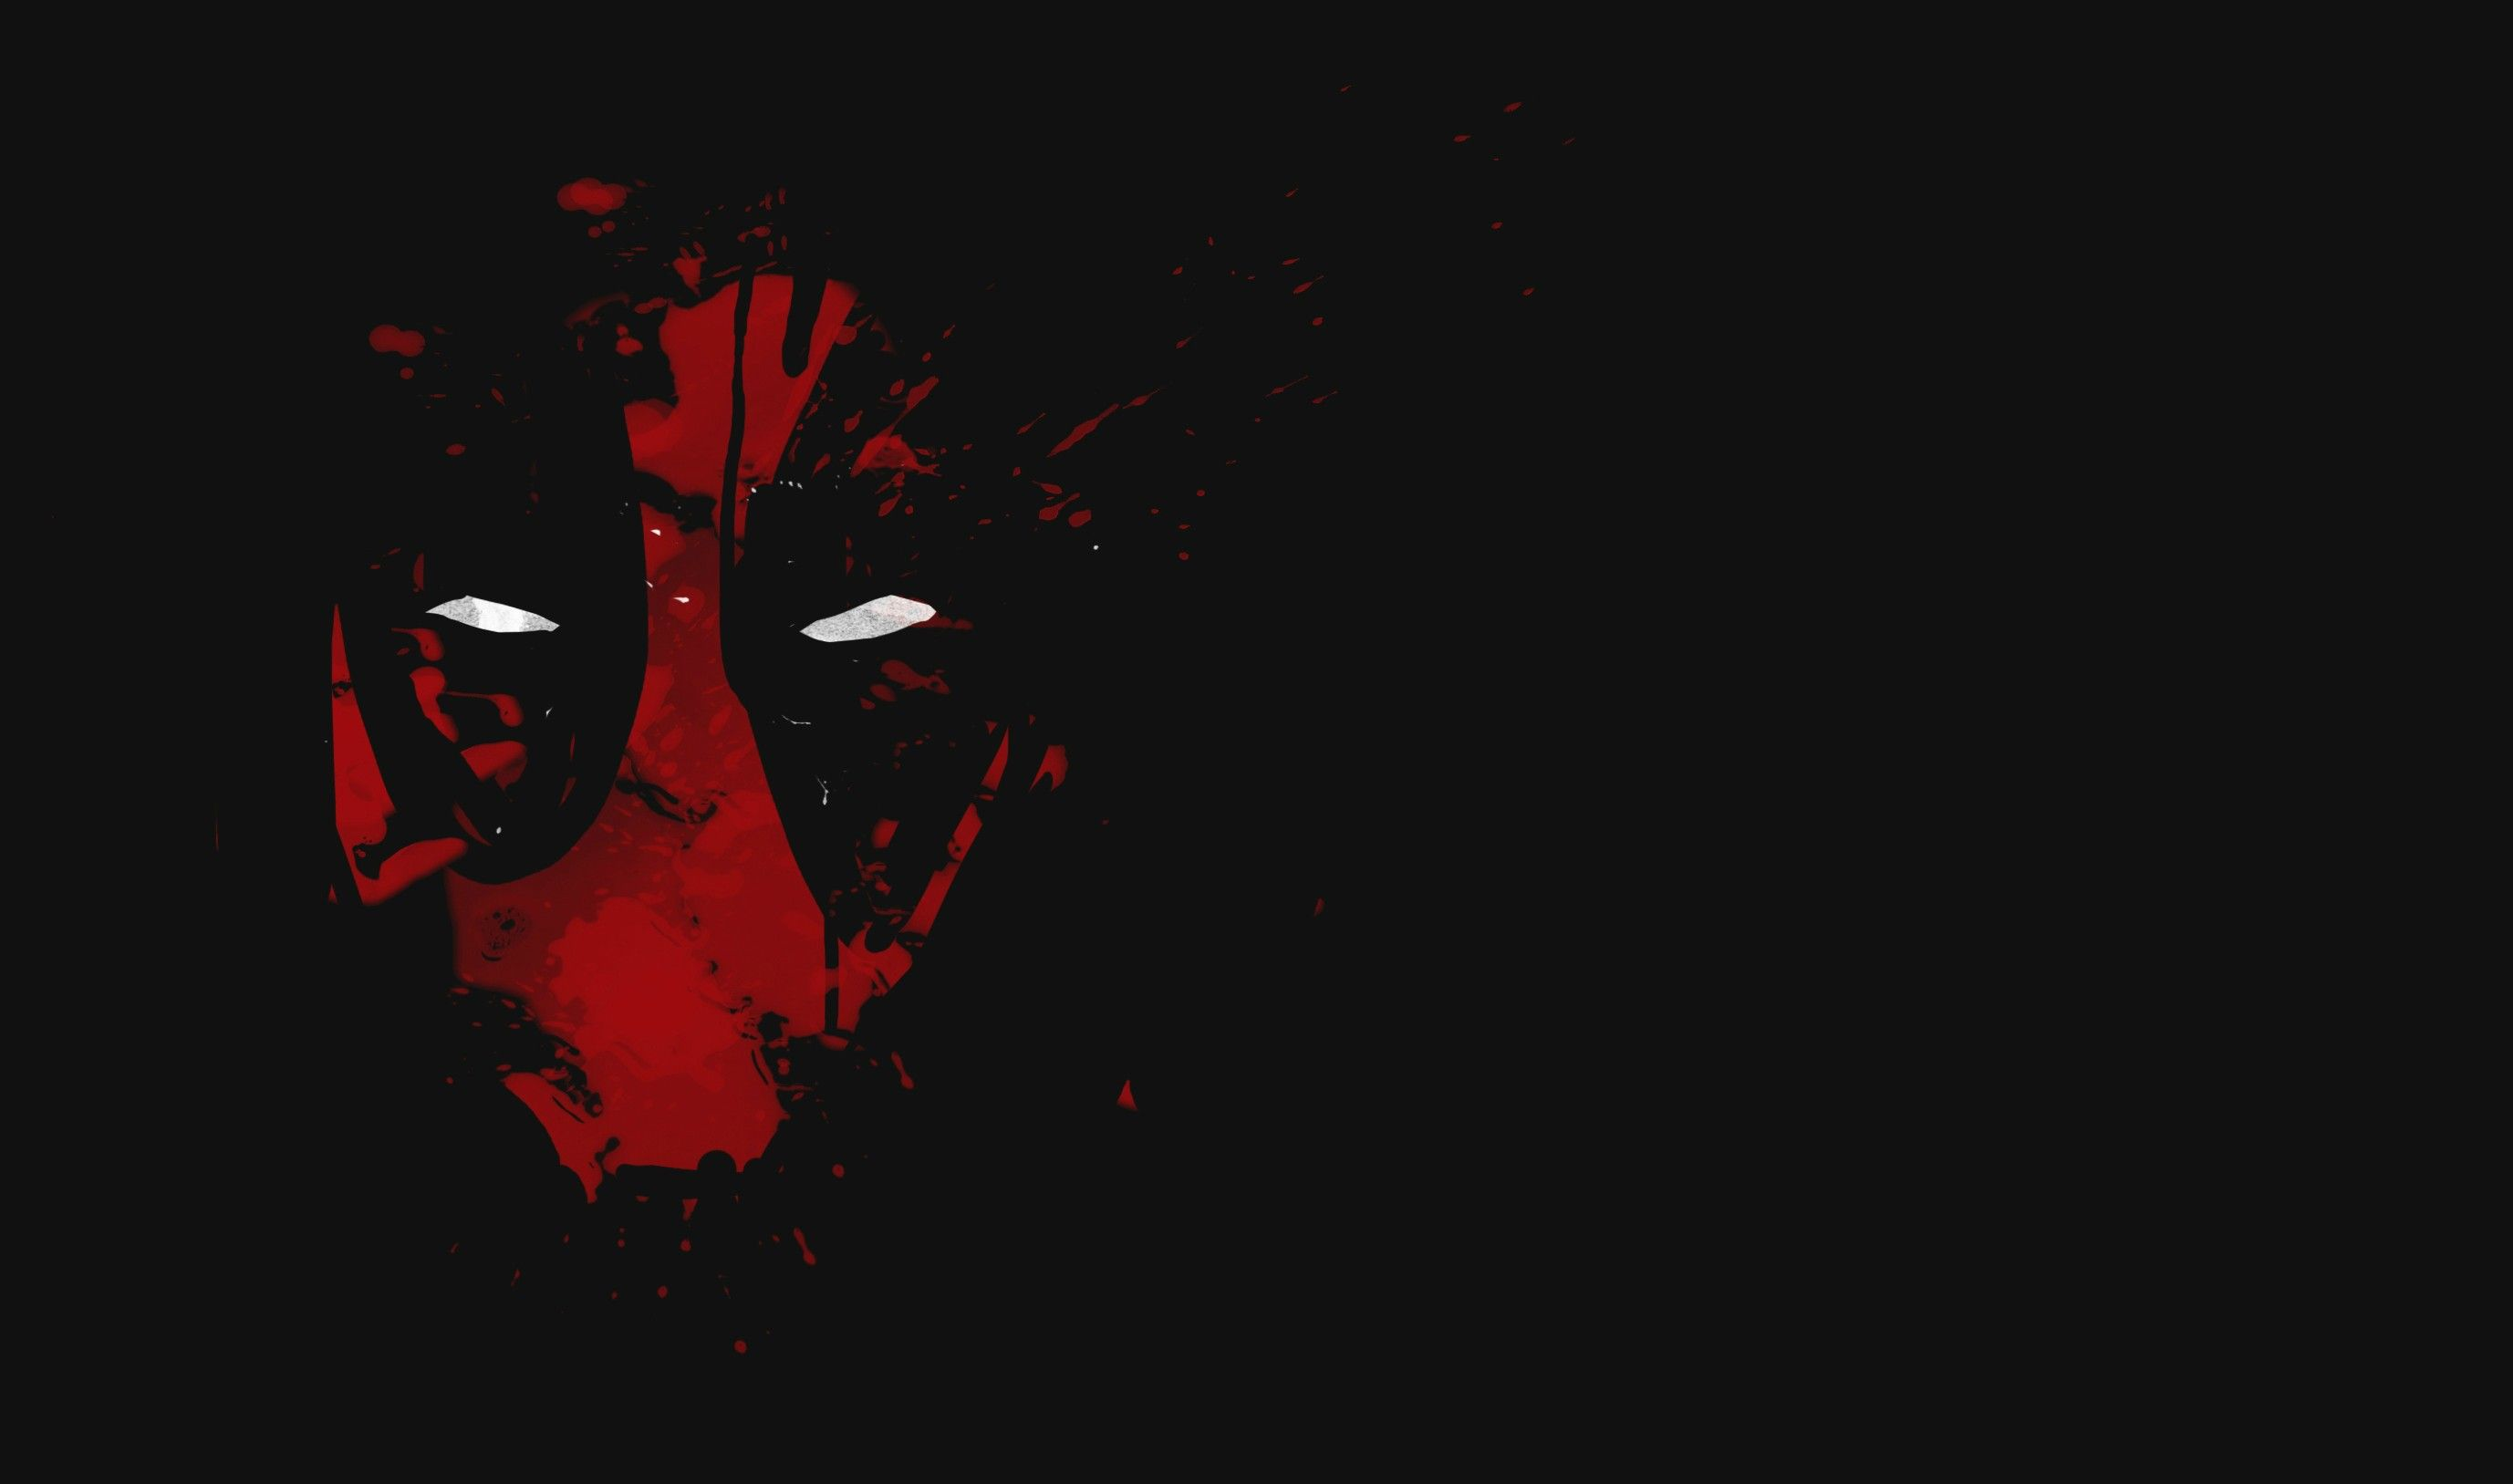 Cool Deadpool Wallpaper With Red Abstract Mask With White Eyes In